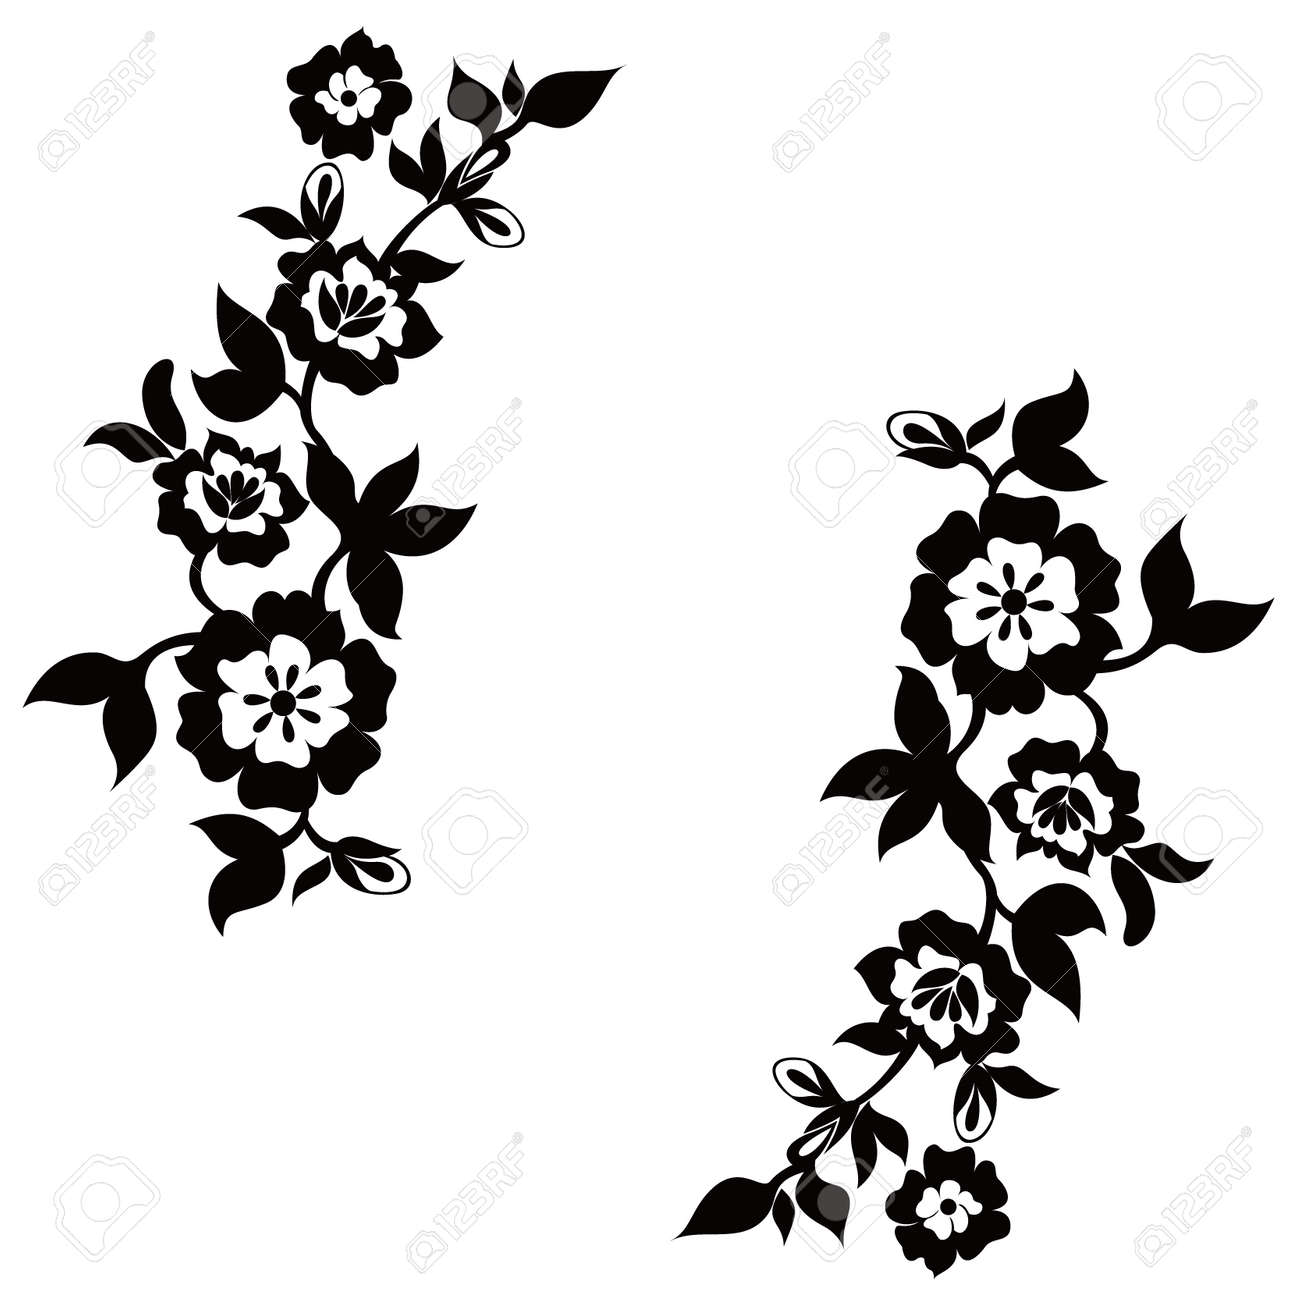 vector floral silhouette on white background royalty free cliparts rh 123rf com flower silhouette vector png floral silhouette vector